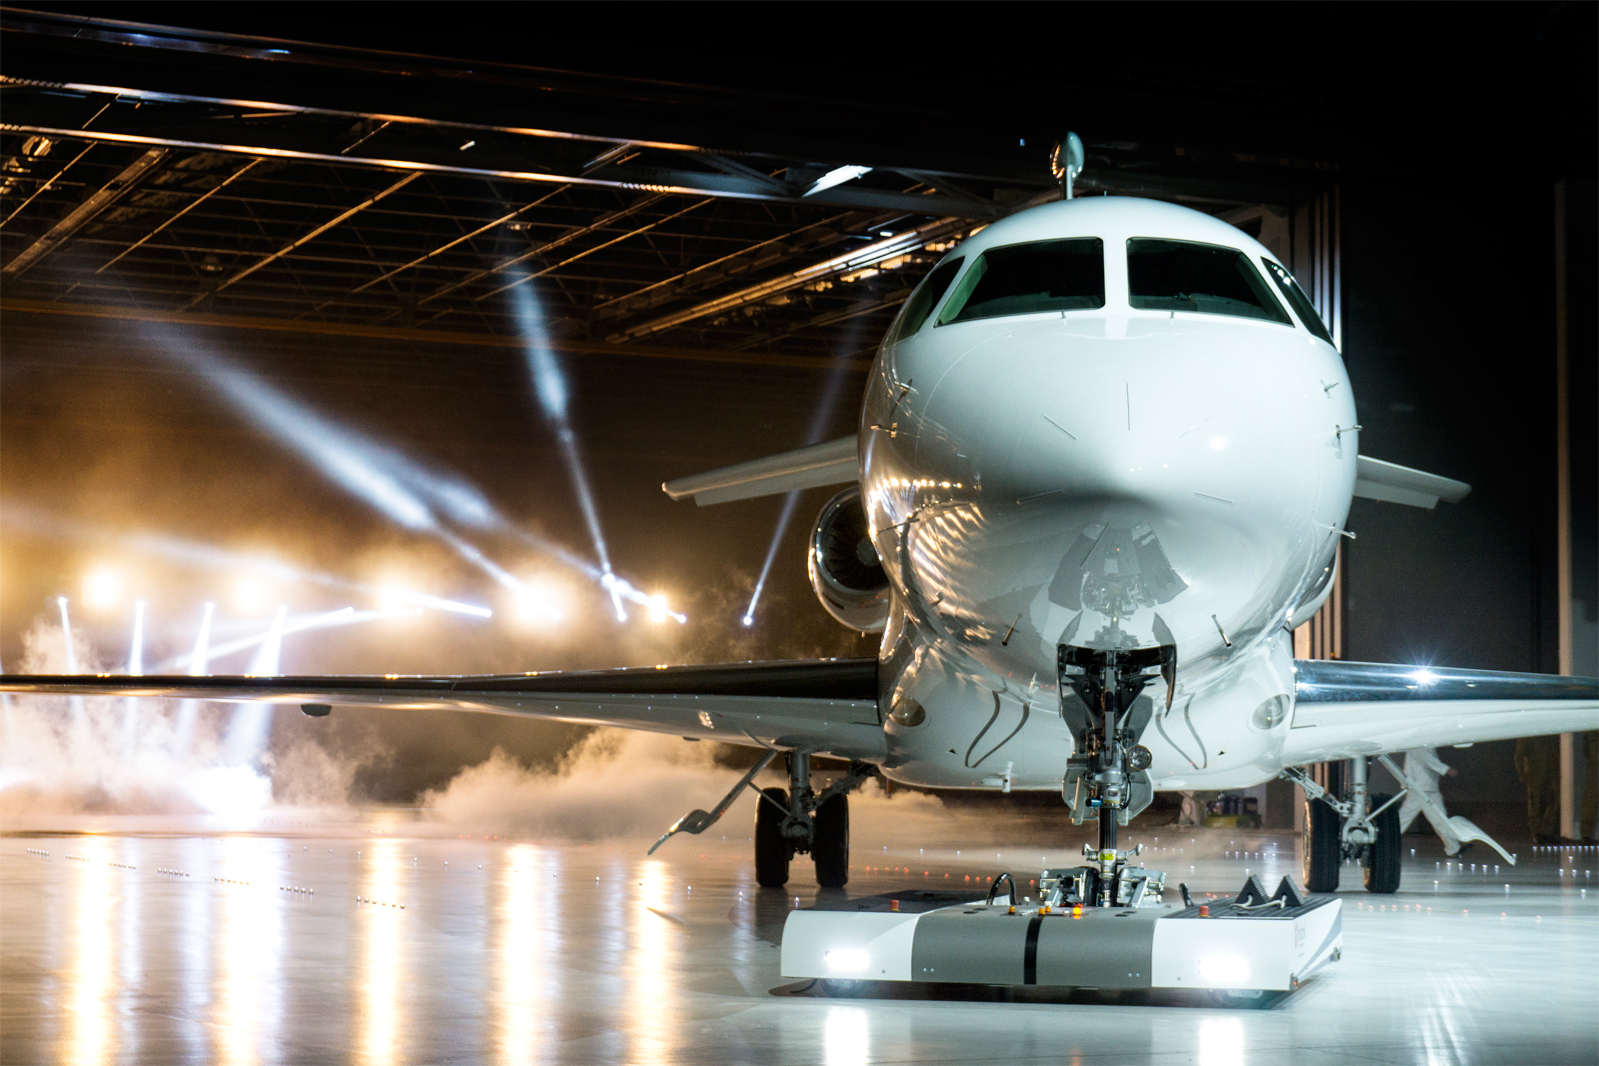 Airplane_in_ hanger